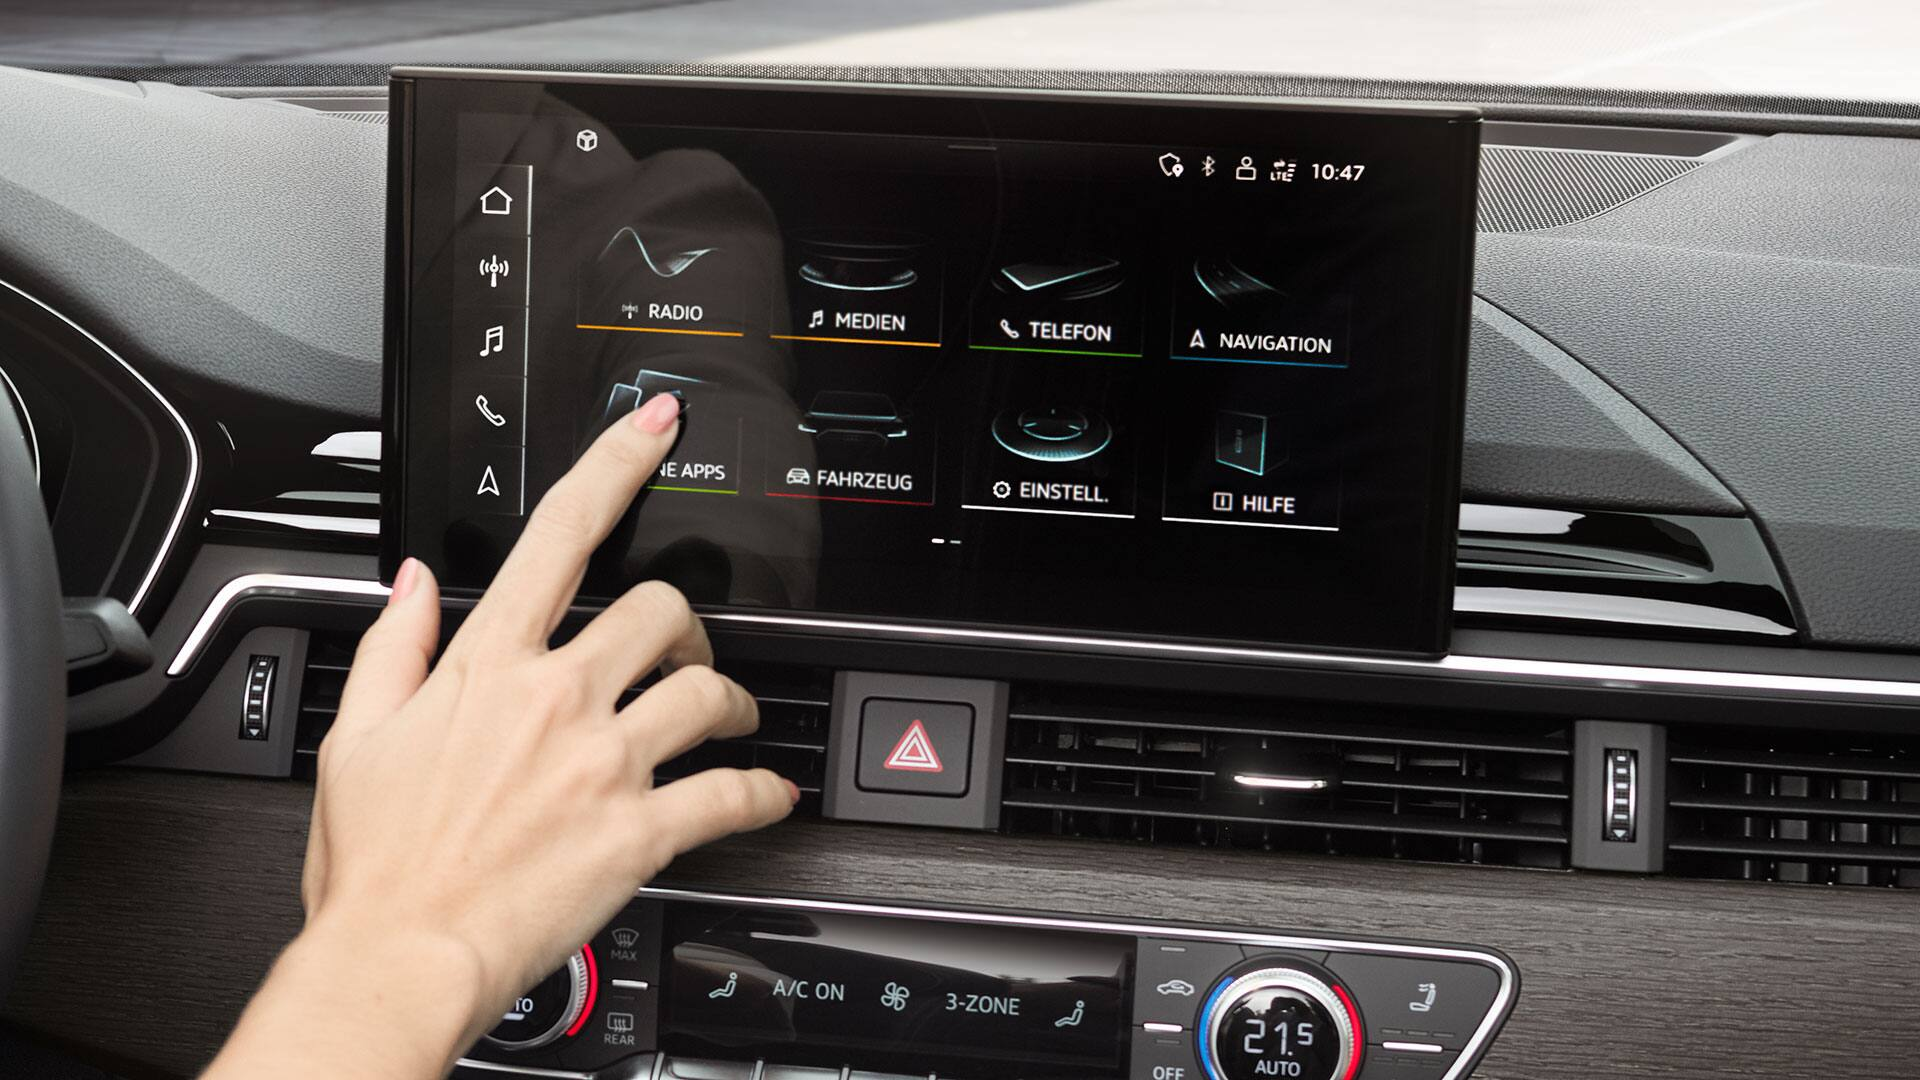 Audi A5 Sportback MMI touch display